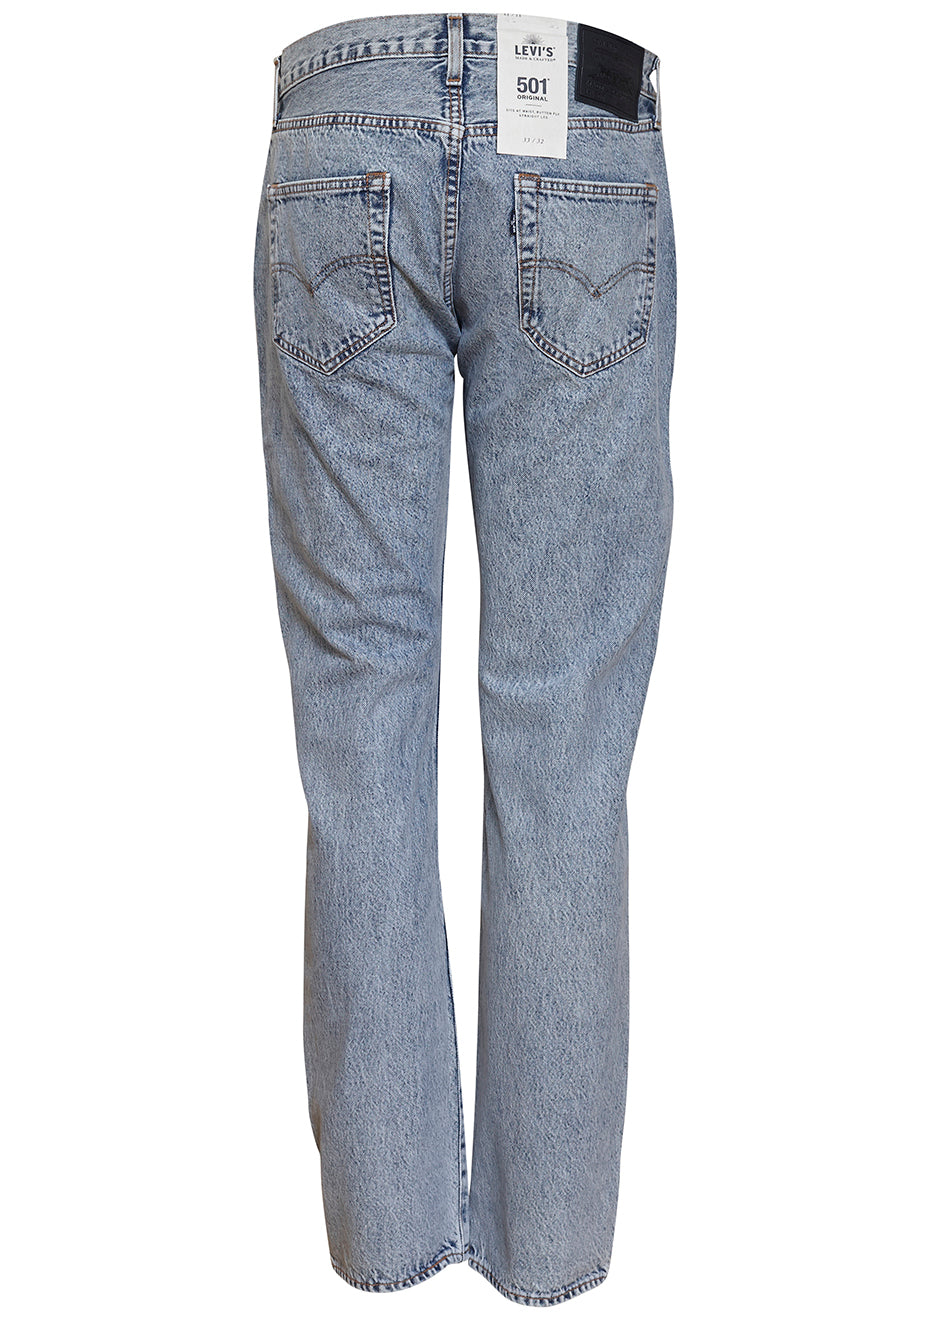 a08d9b66 Levi's 501 Original Fit Mid Flat Jeans | Shop Levi's Made & Crafted ...